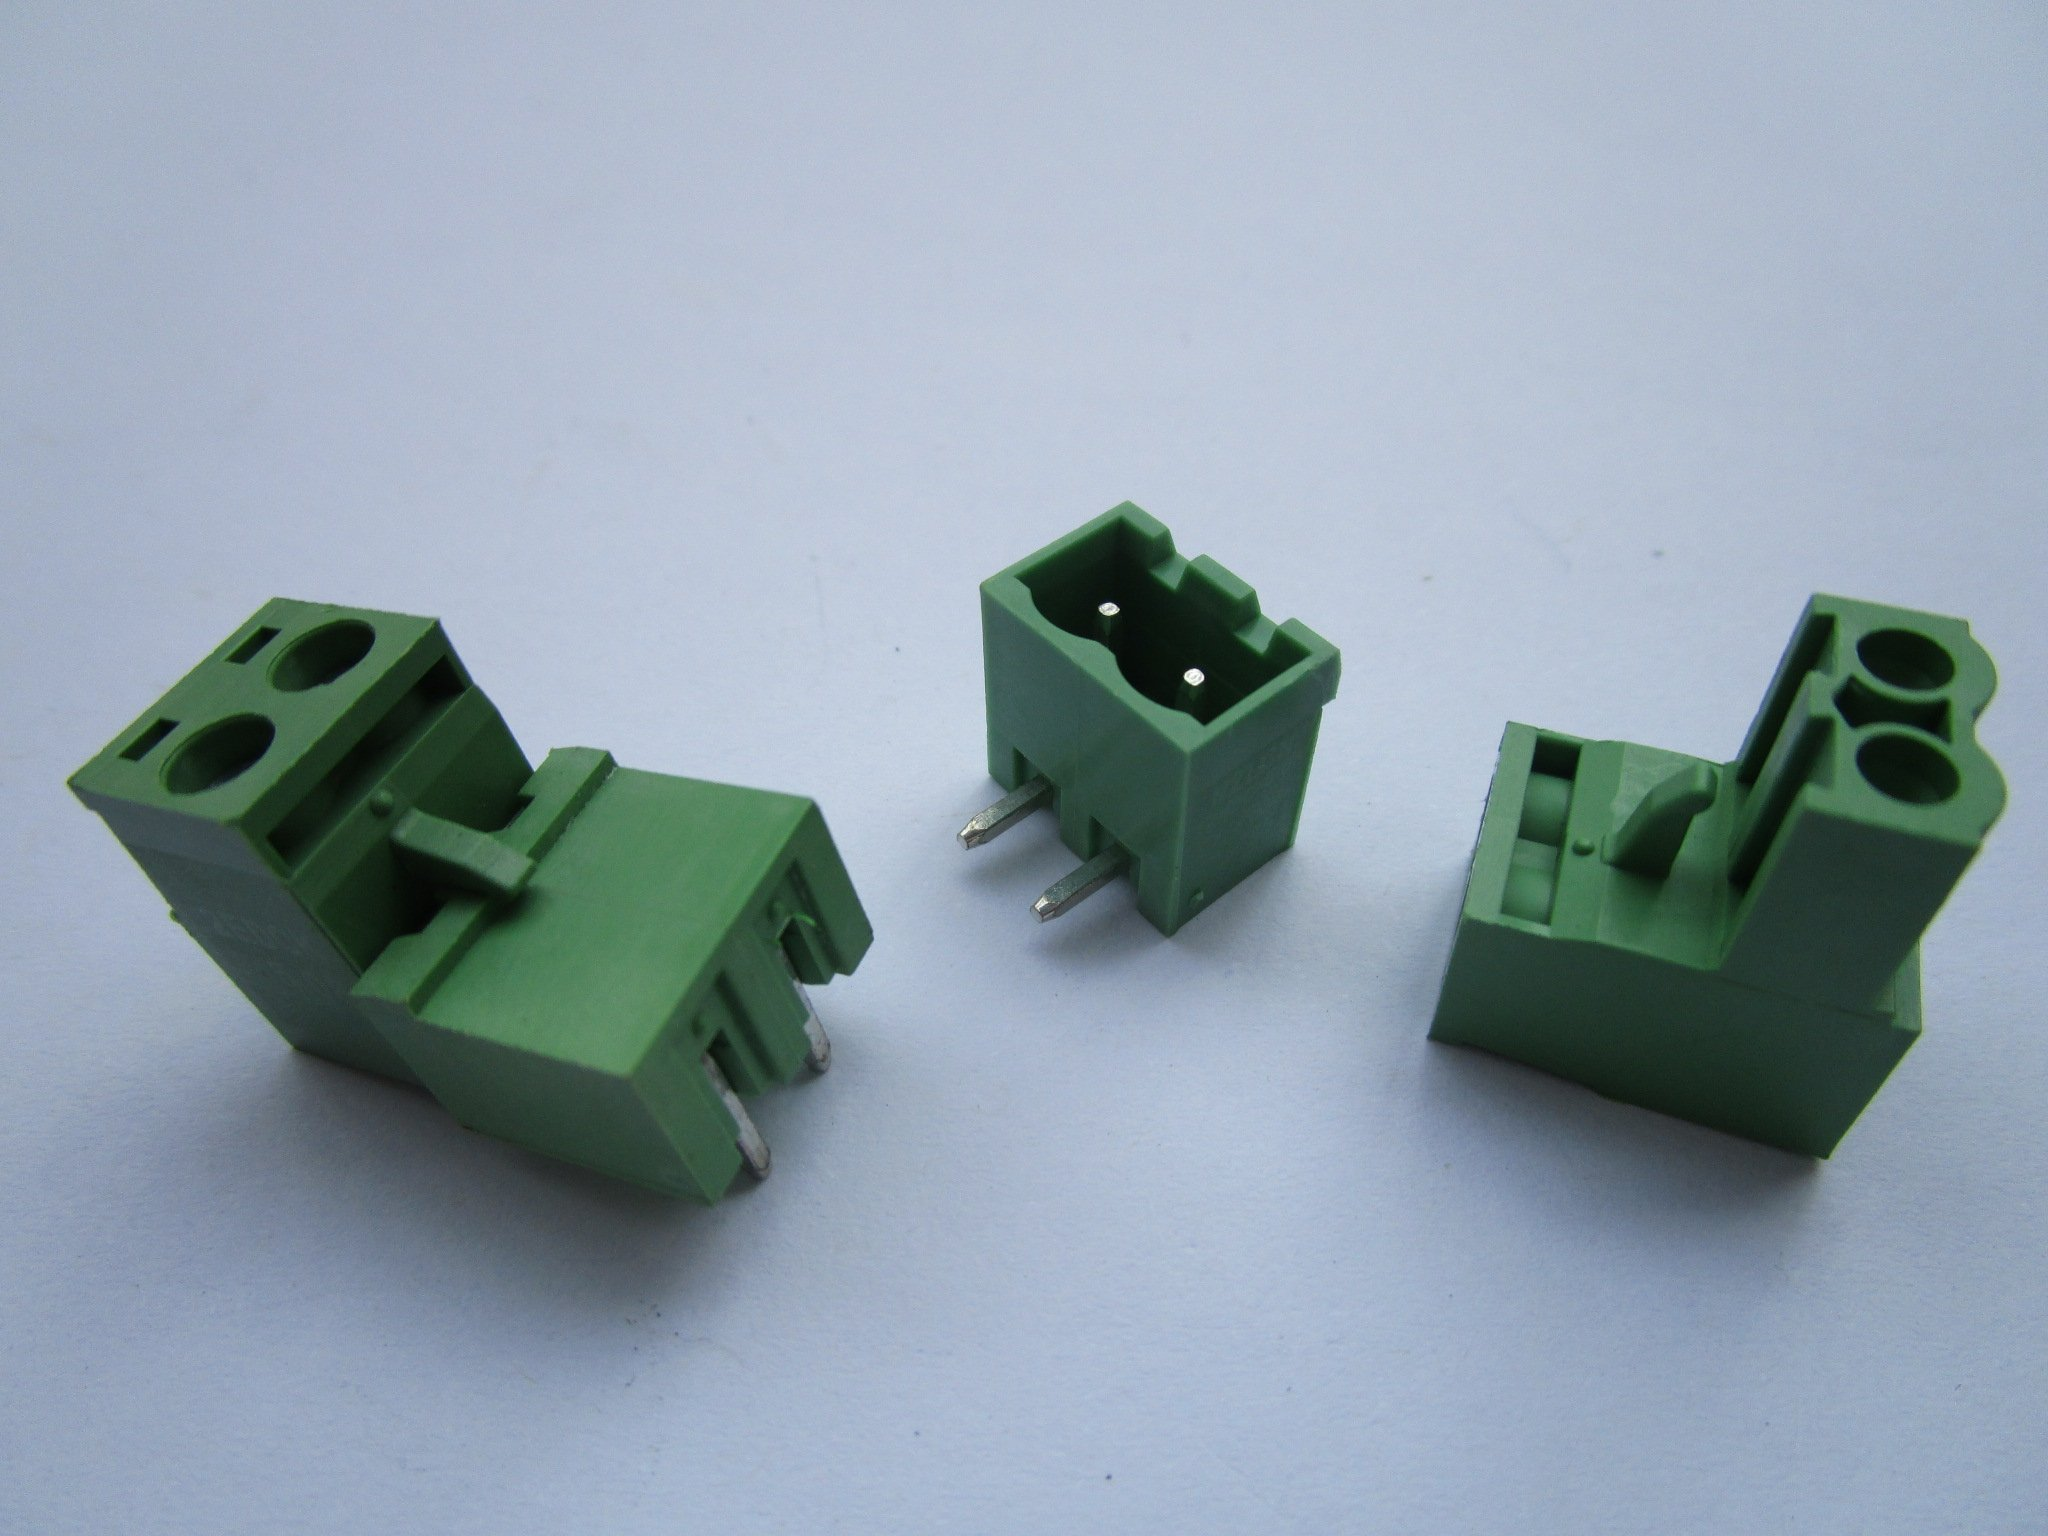 400 Pcs Pitch 5.08mm Close Angle 2 Way/pin Screw Terminal Block Connector w/ Angle-pin Green Color Pluggable Type